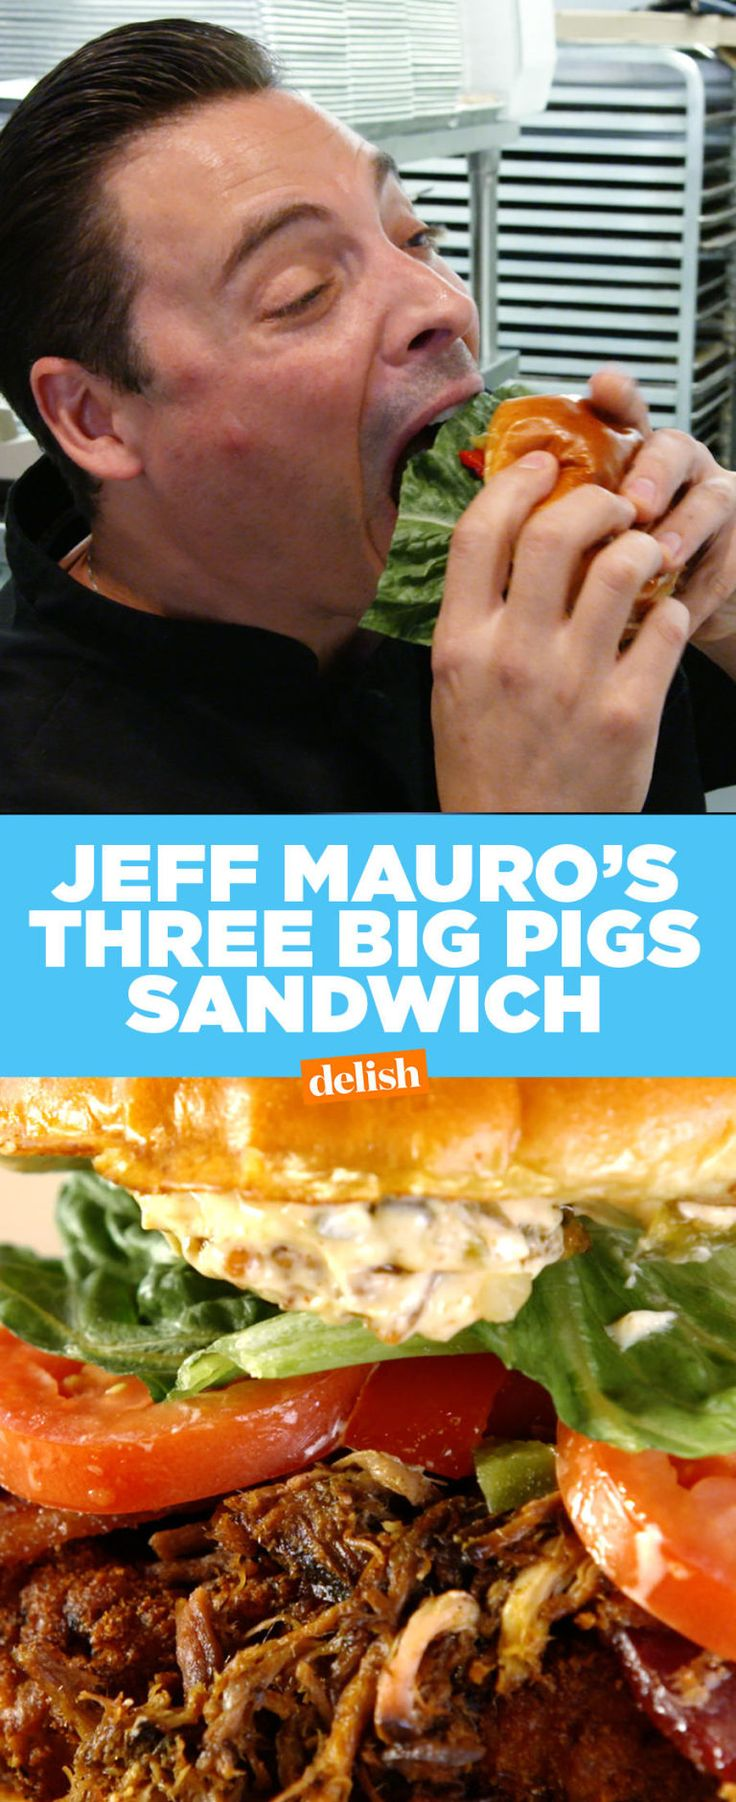 Jeff Mauro Created His Most Insane Sandwich Yet Just For Delish Fans